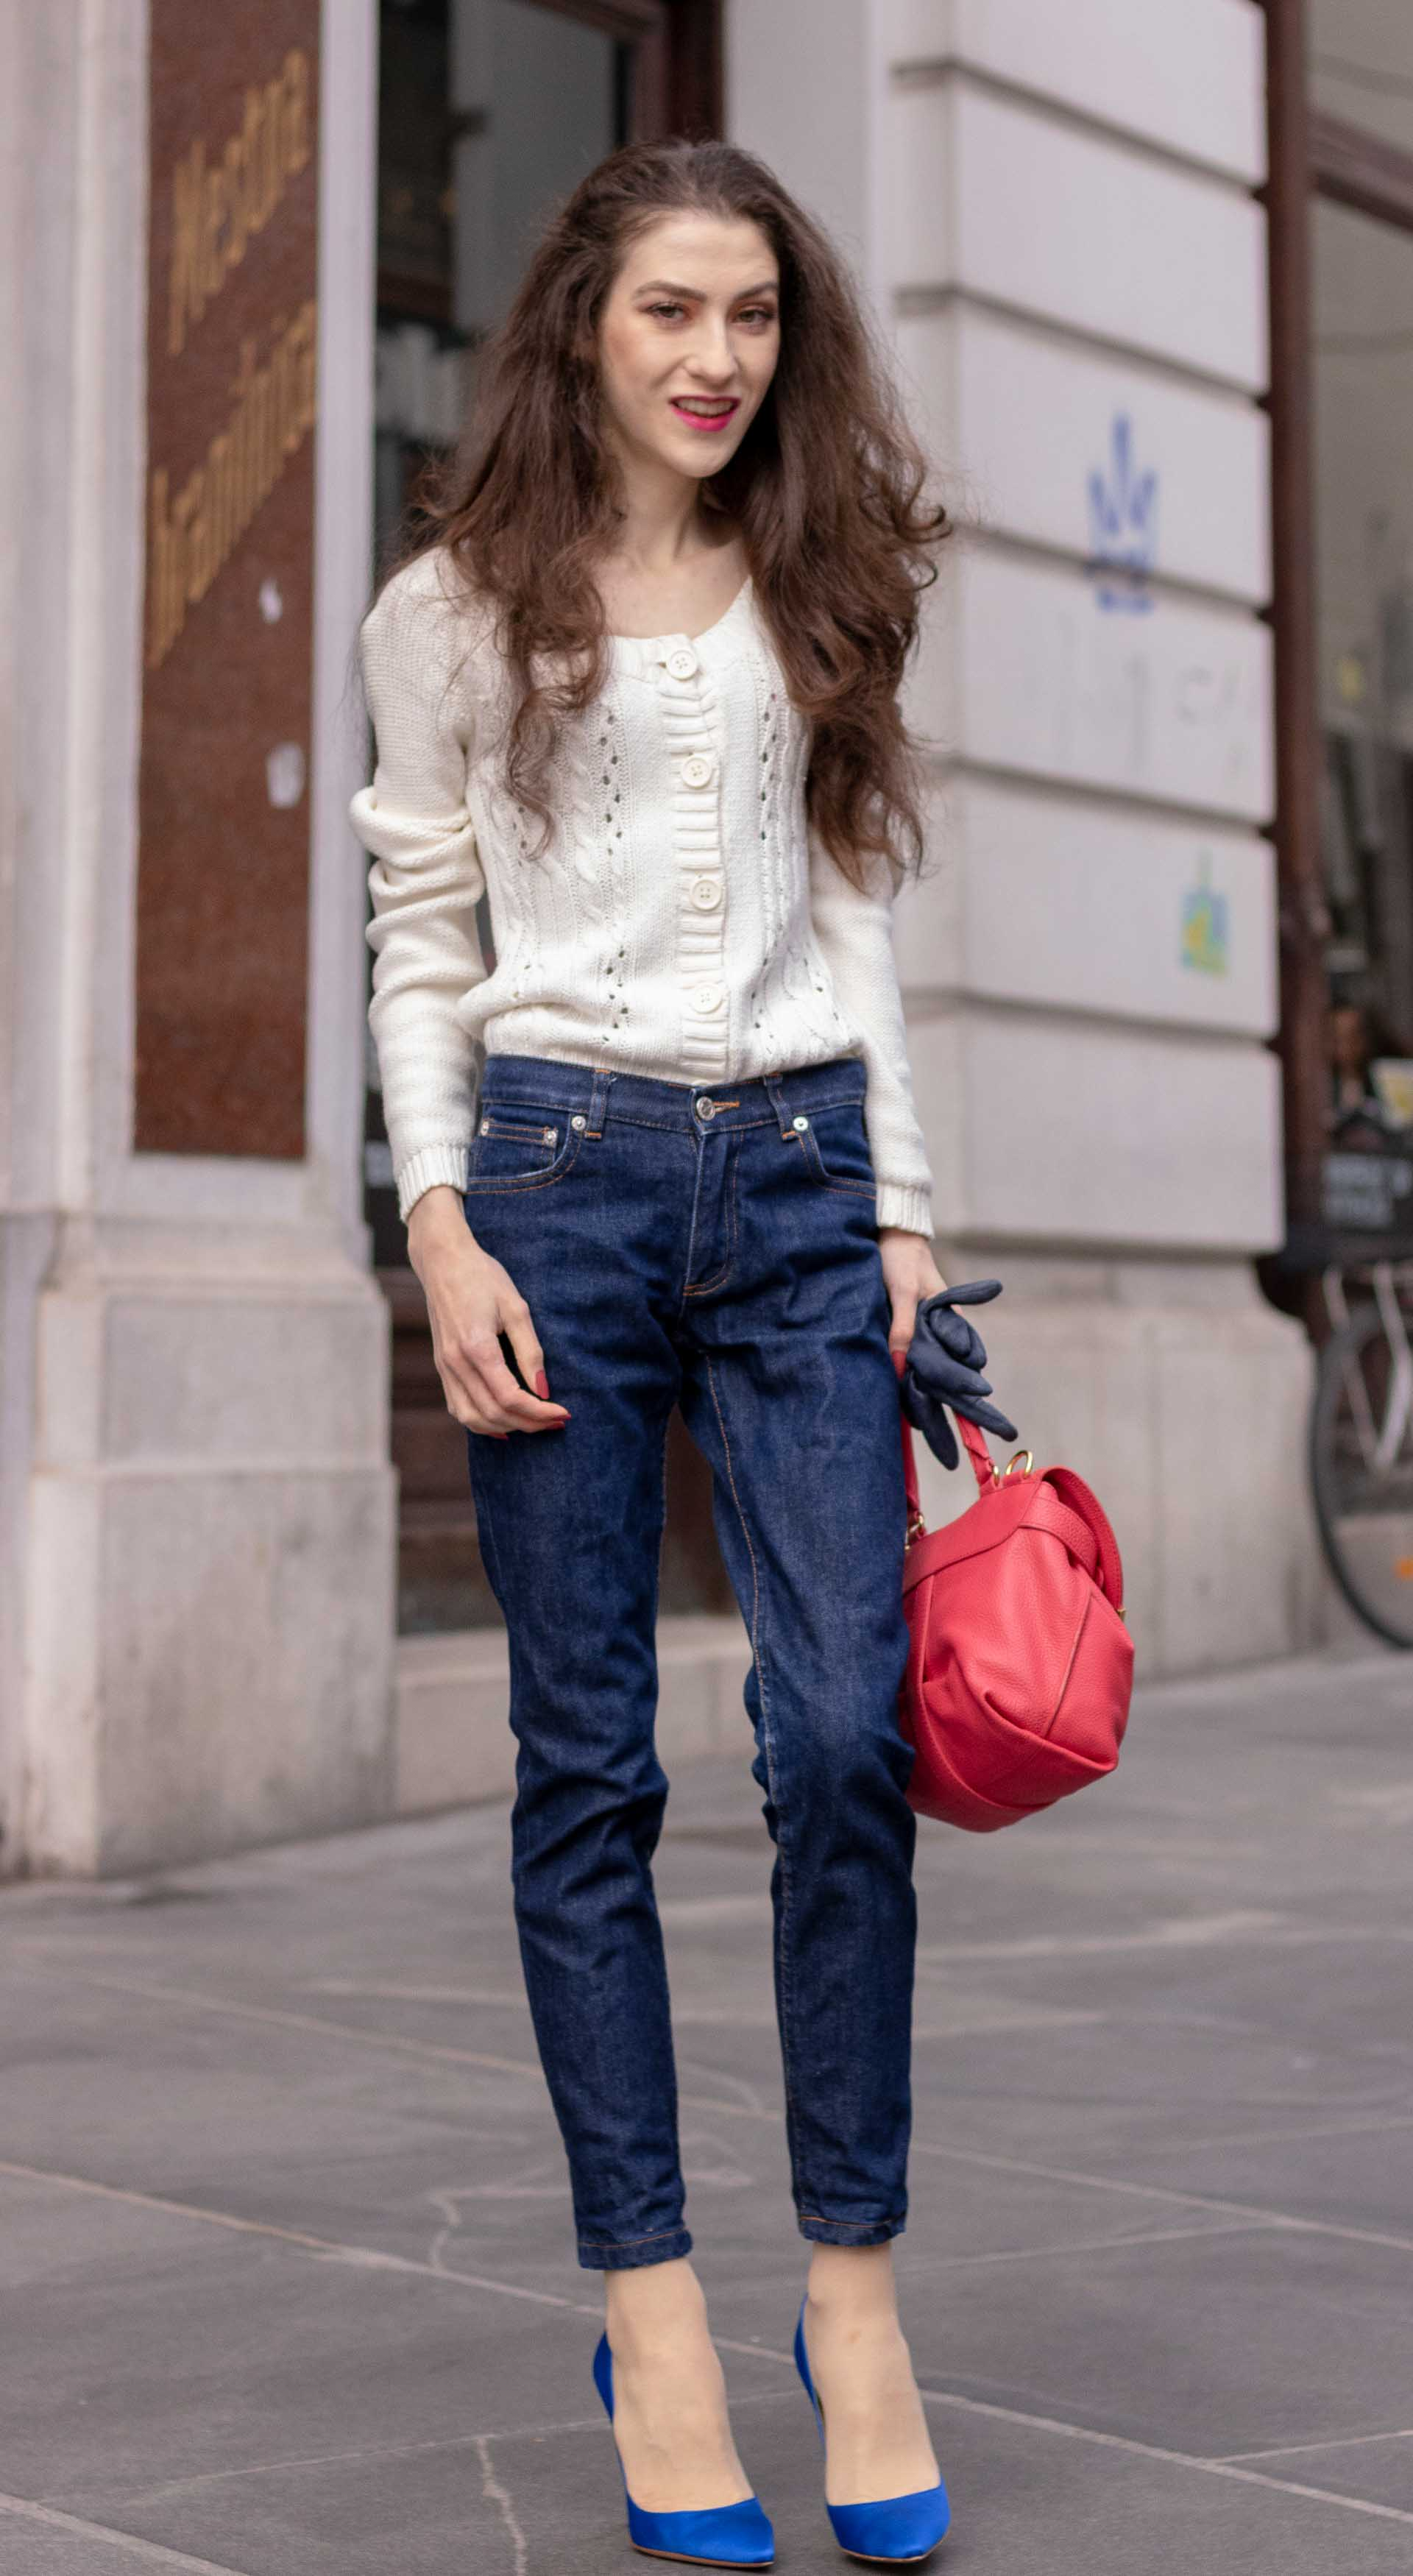 Beautiful Slovenian Fashion Blogger Veronika Lipar of Brunette from Wall wearing white Mango cardigan tucked into dark blue denim jeans from a.p.c., blue Gianvito Rossi pumps, pink top handle bag standing on the street